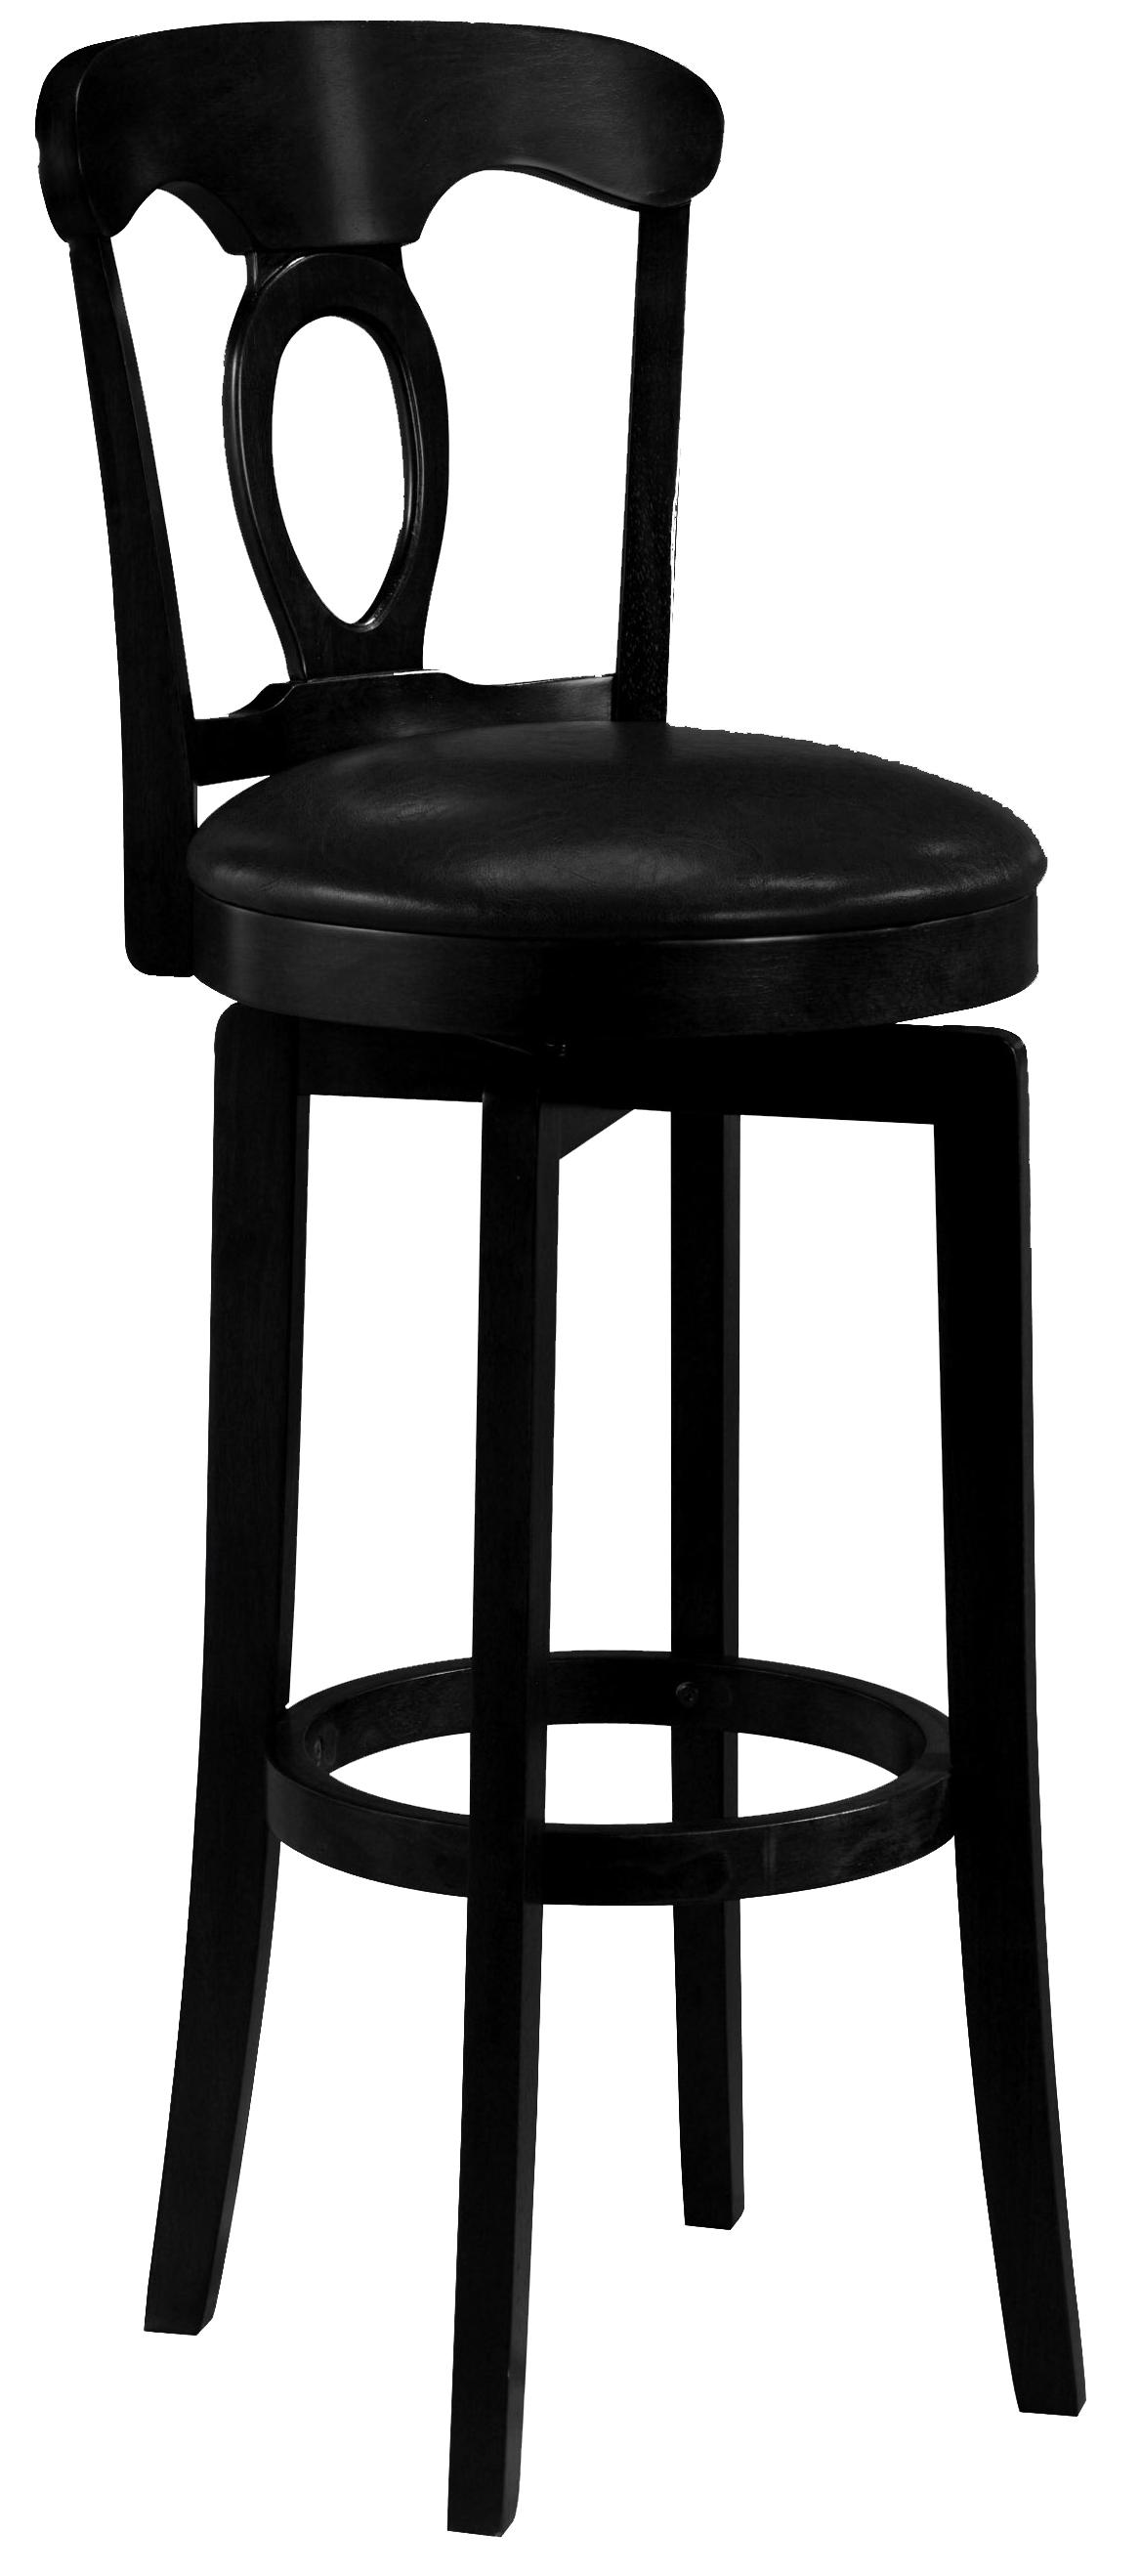 "Hillsdale Wood Stools 30"" Bar Height Black Corsica Stool  - Item Number: 4168-832"